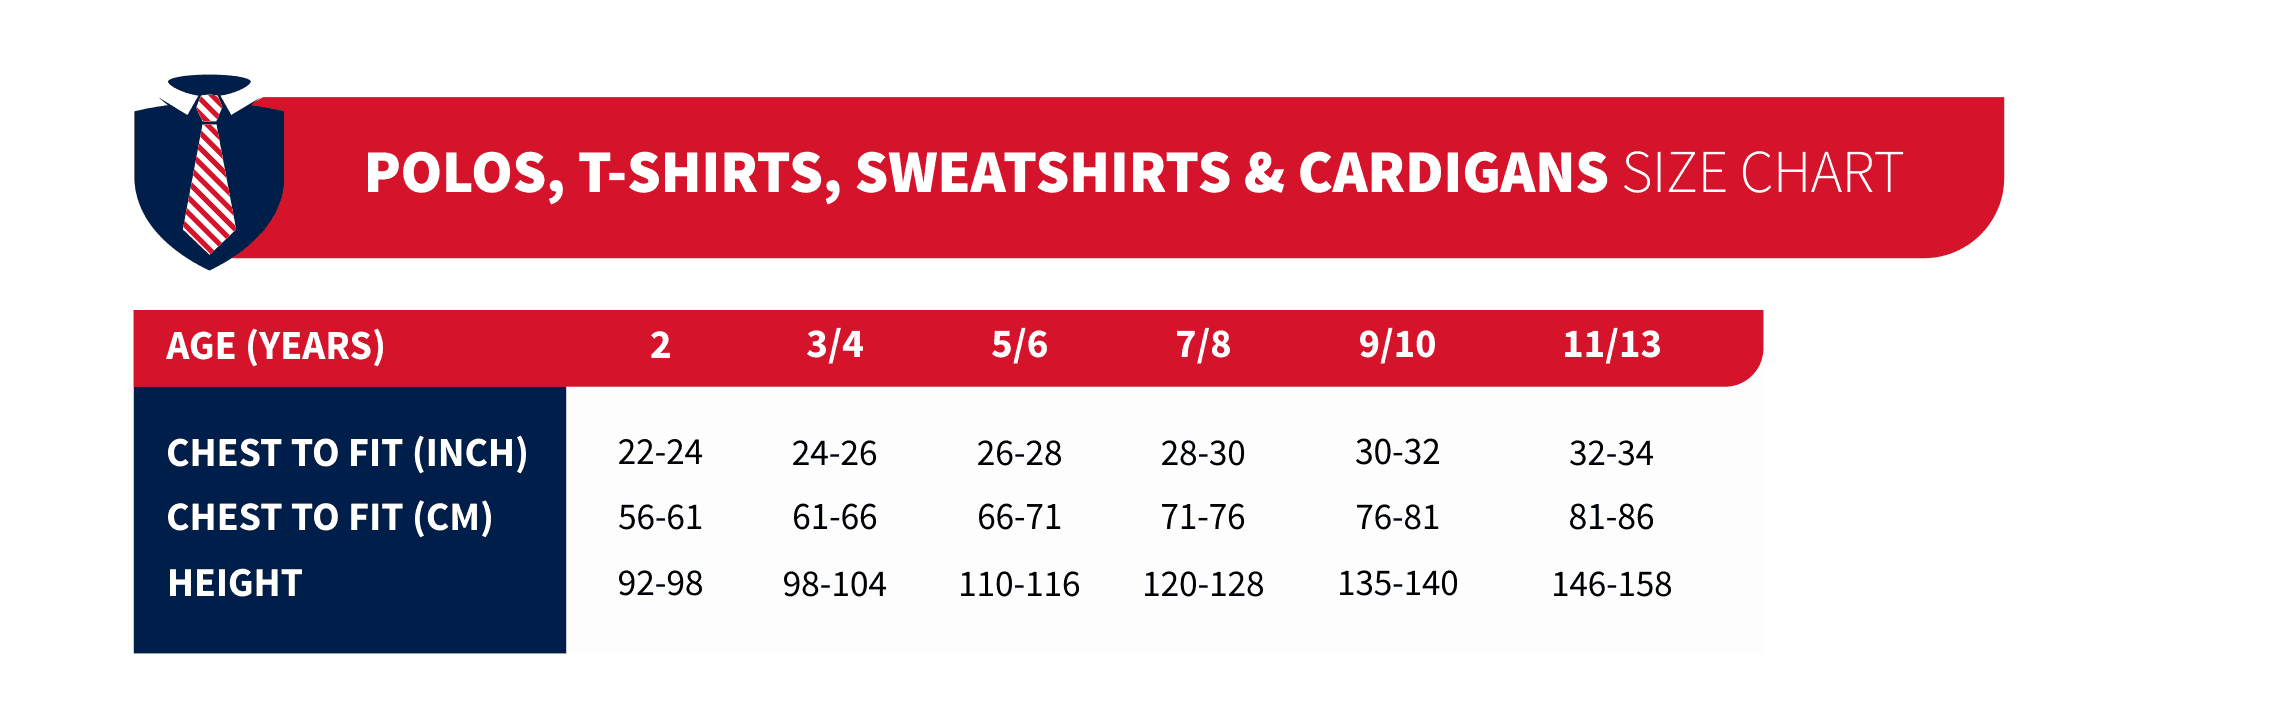 polo's tshirts sweatshirts and cardigan's size chart